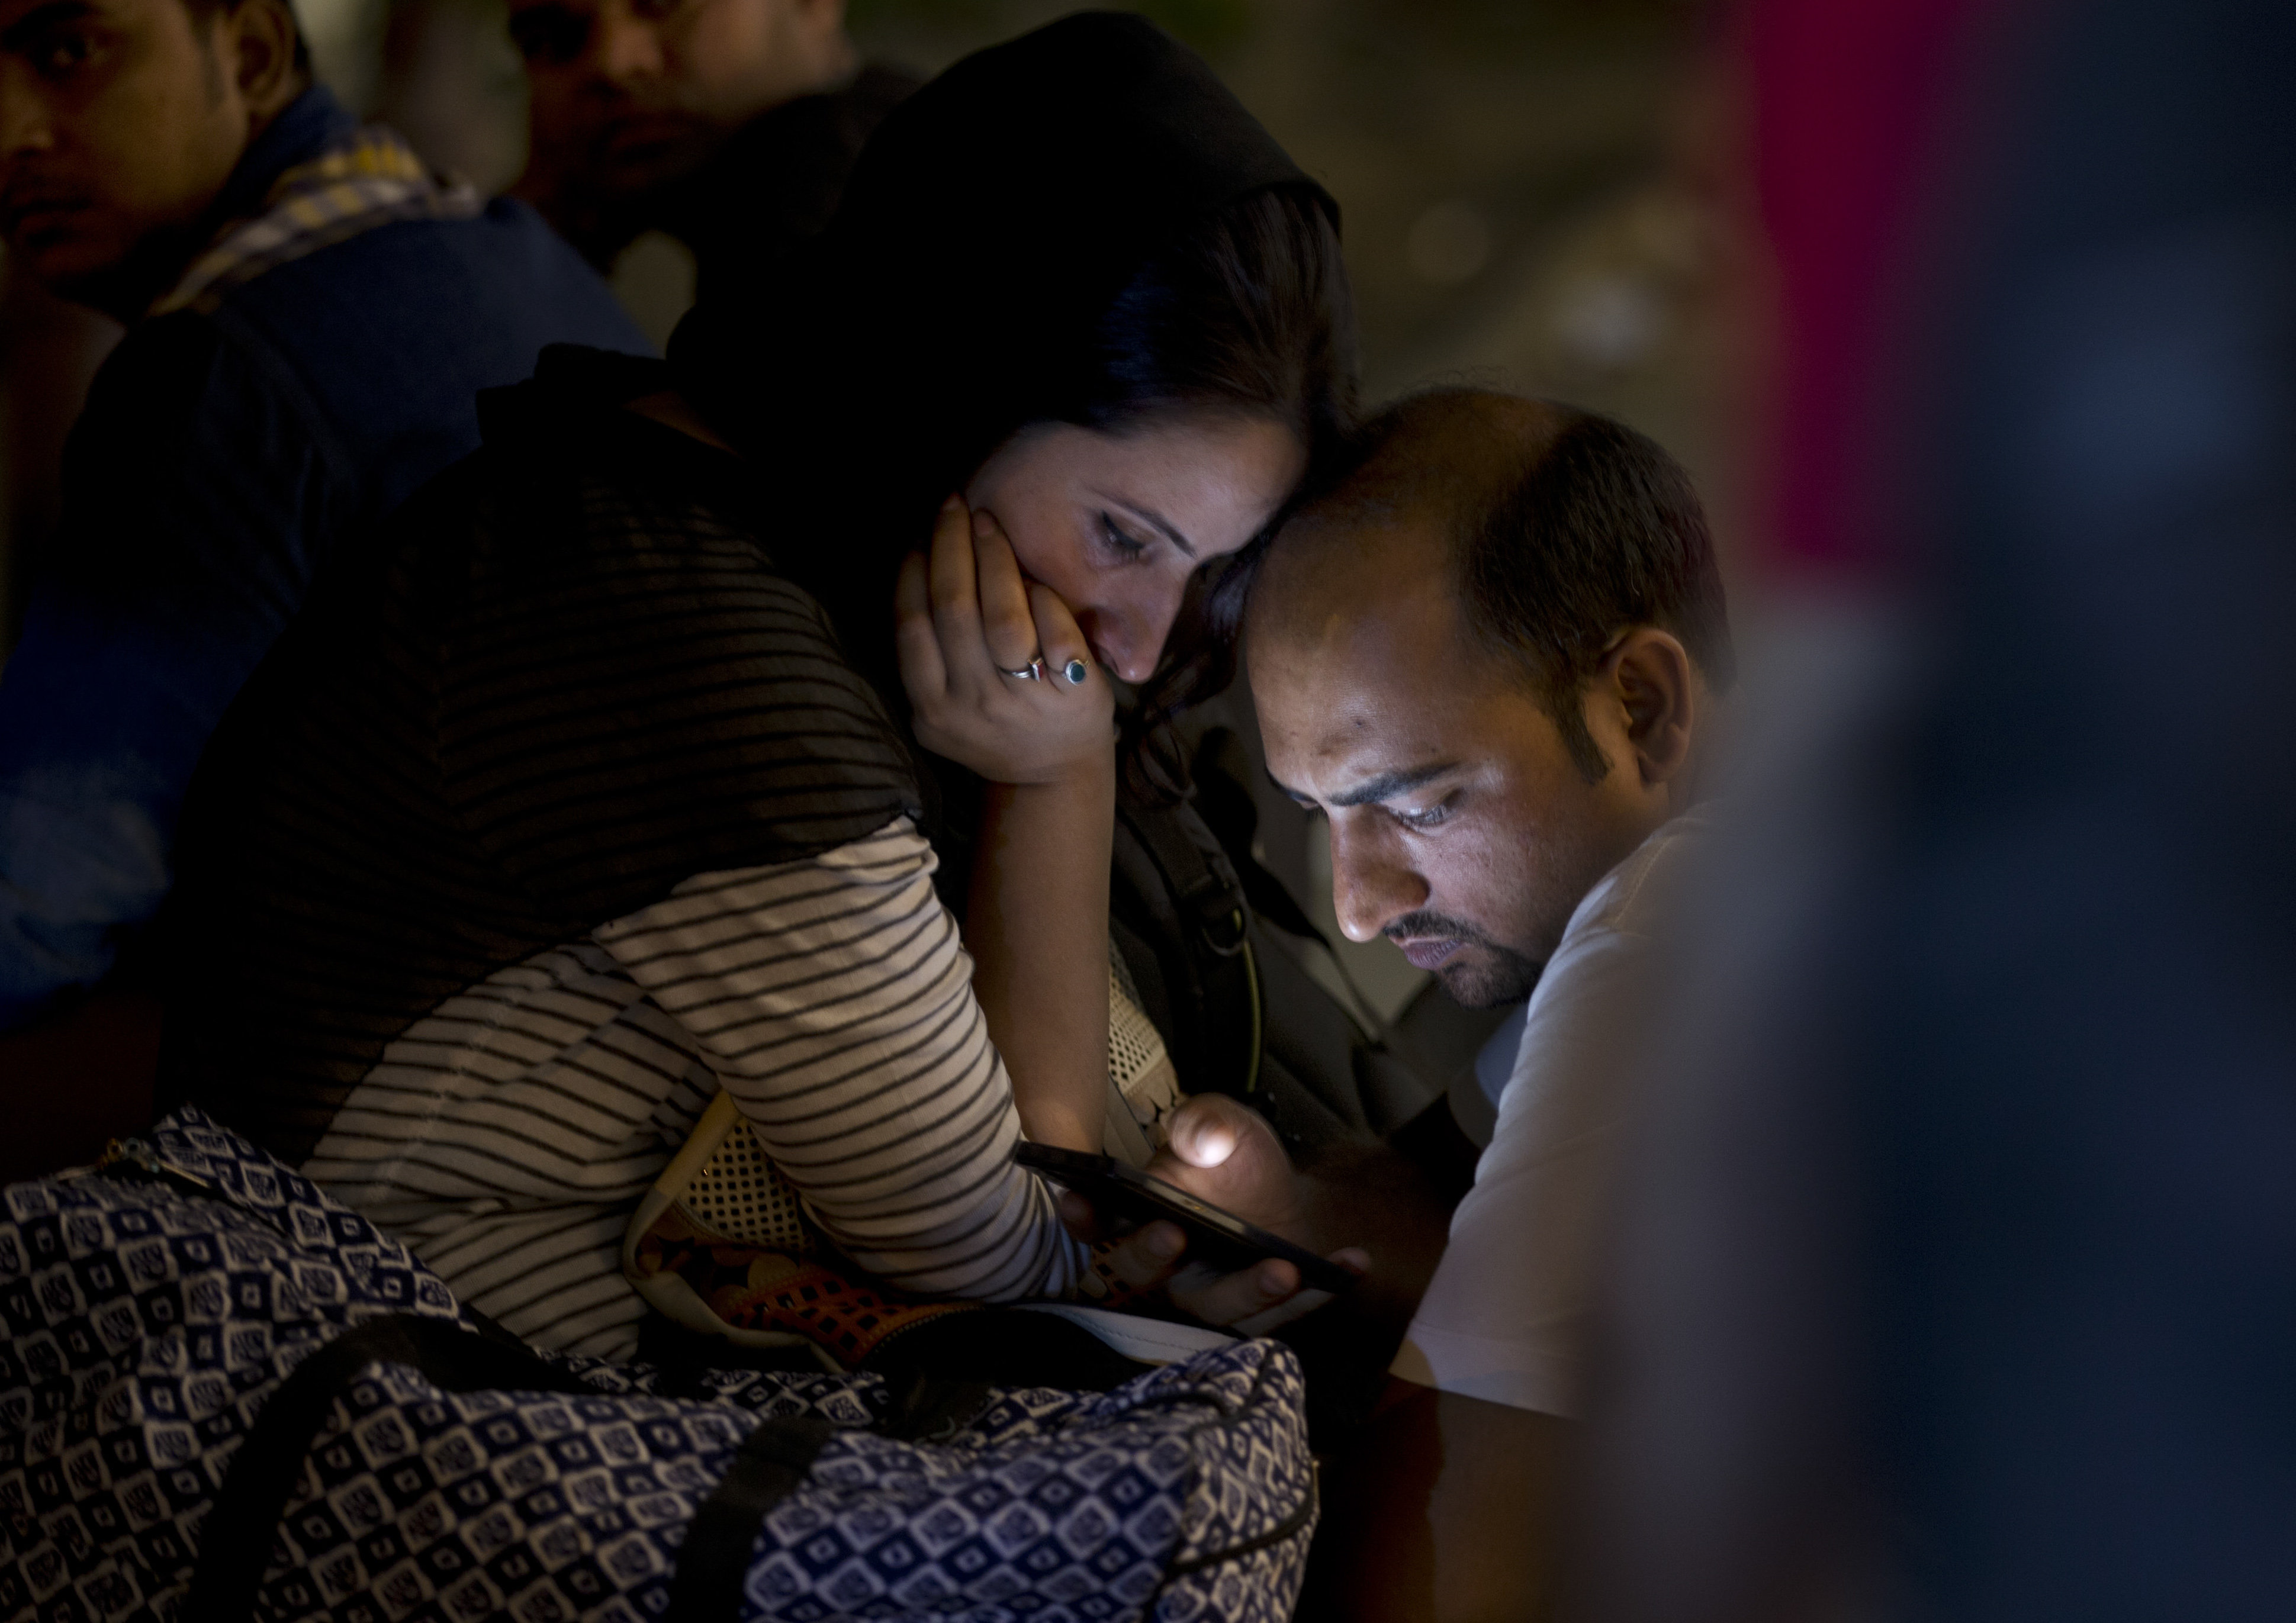 Indians use a mobile phone at a market area in New Delhi, Sept. 27, 2015, following a rare visit to Silicon Valley by Indian Prime Minister Narendra Modi.